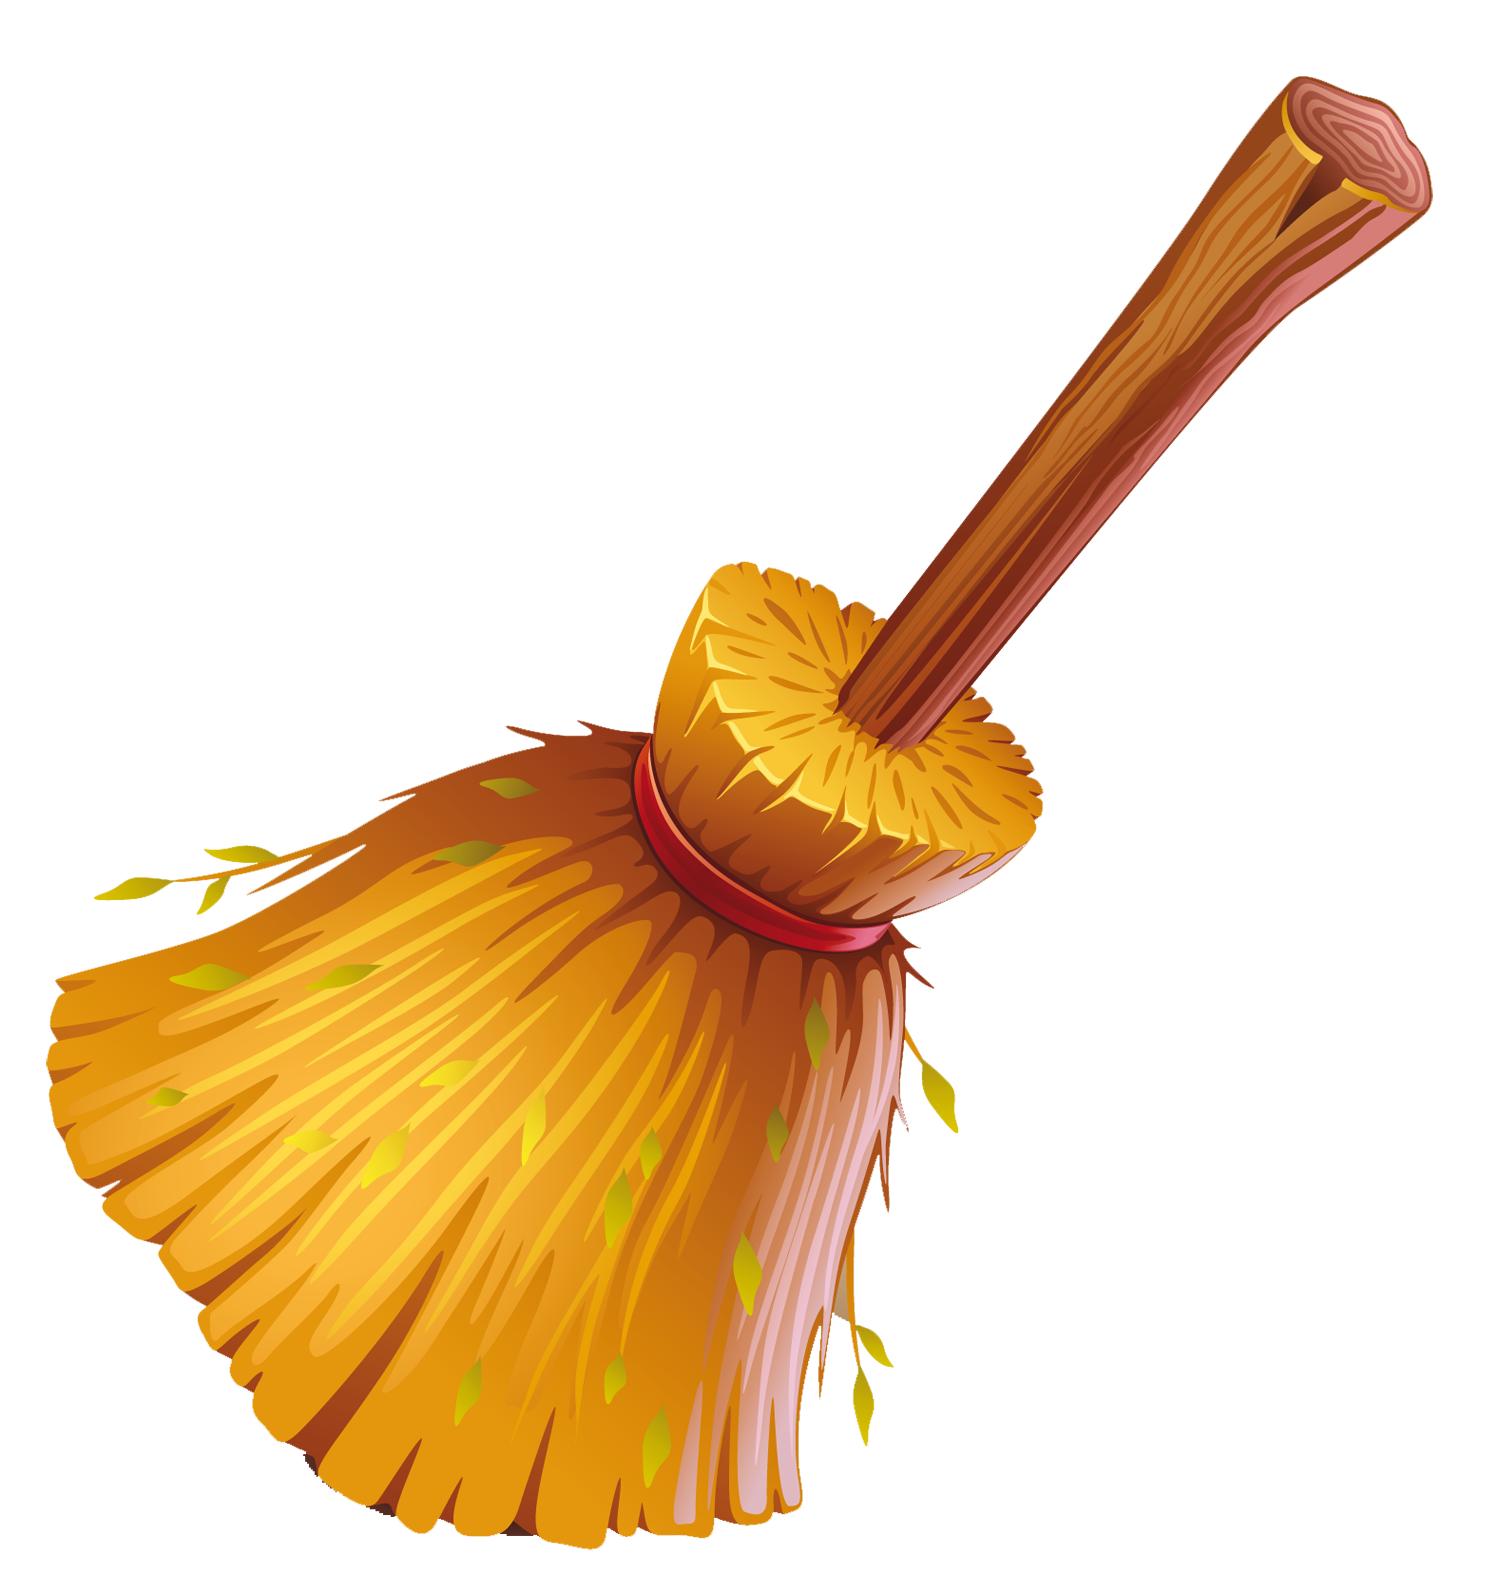 Broom clipart sweeping broom. Witch png gallery yopriceville